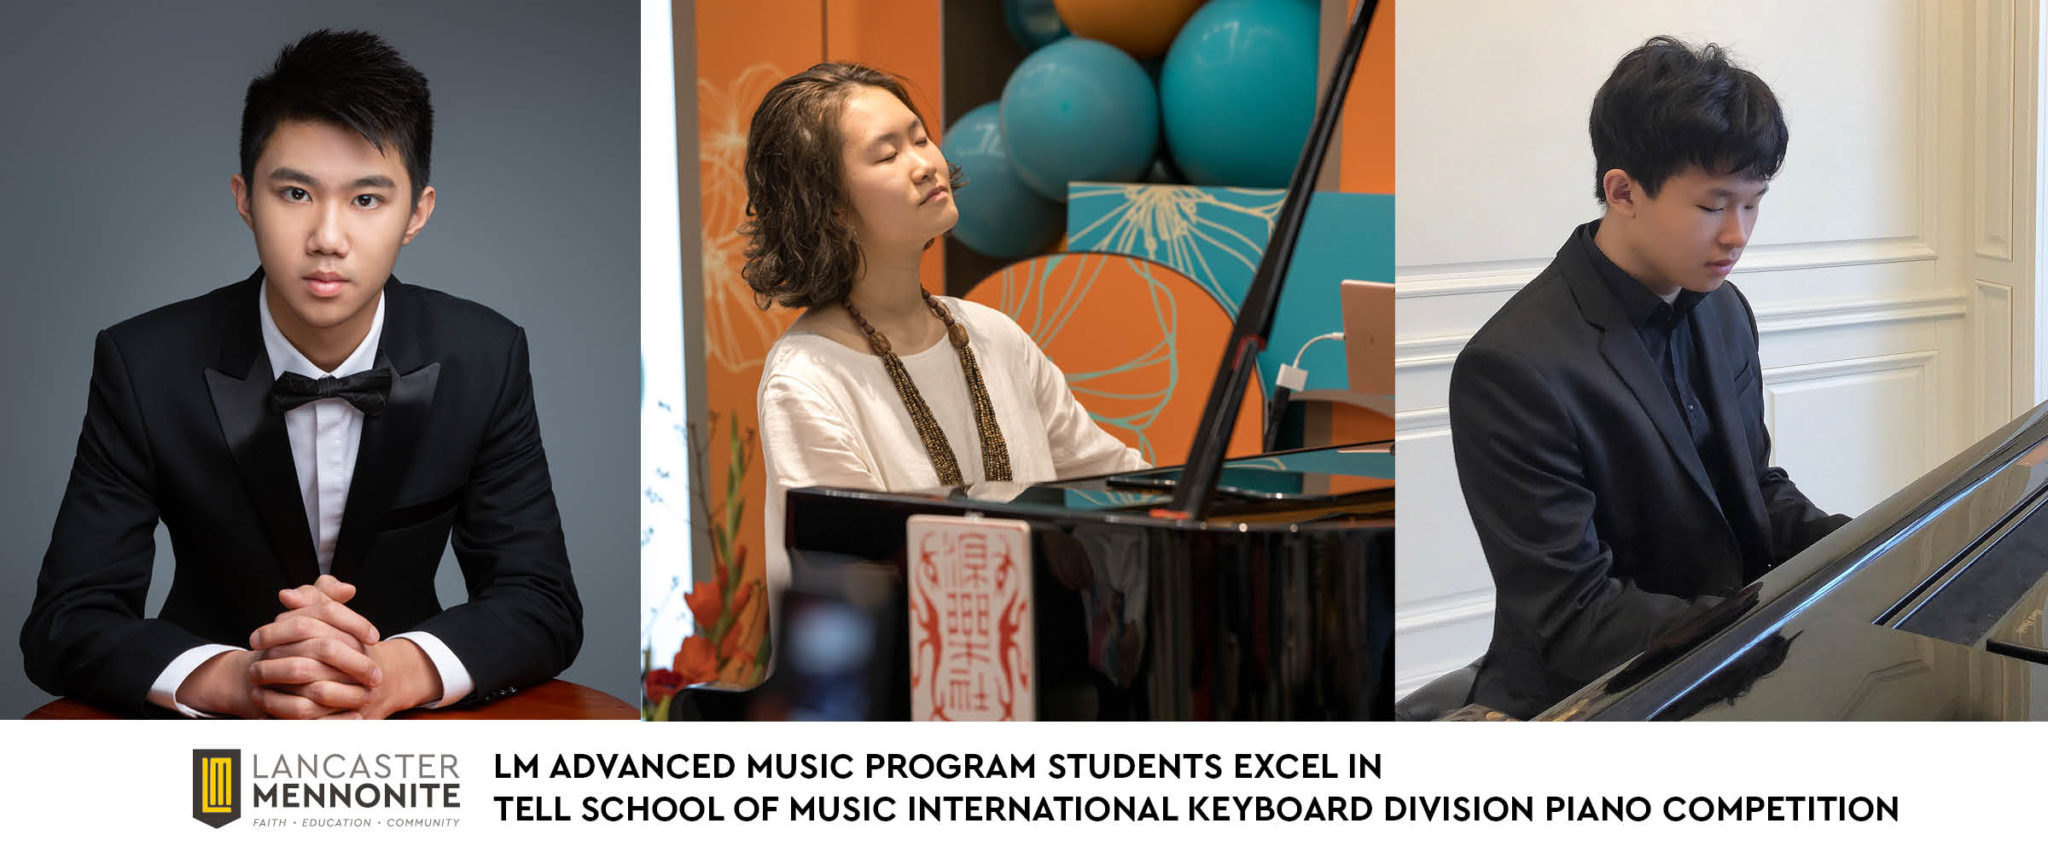 students in LM advanced music program